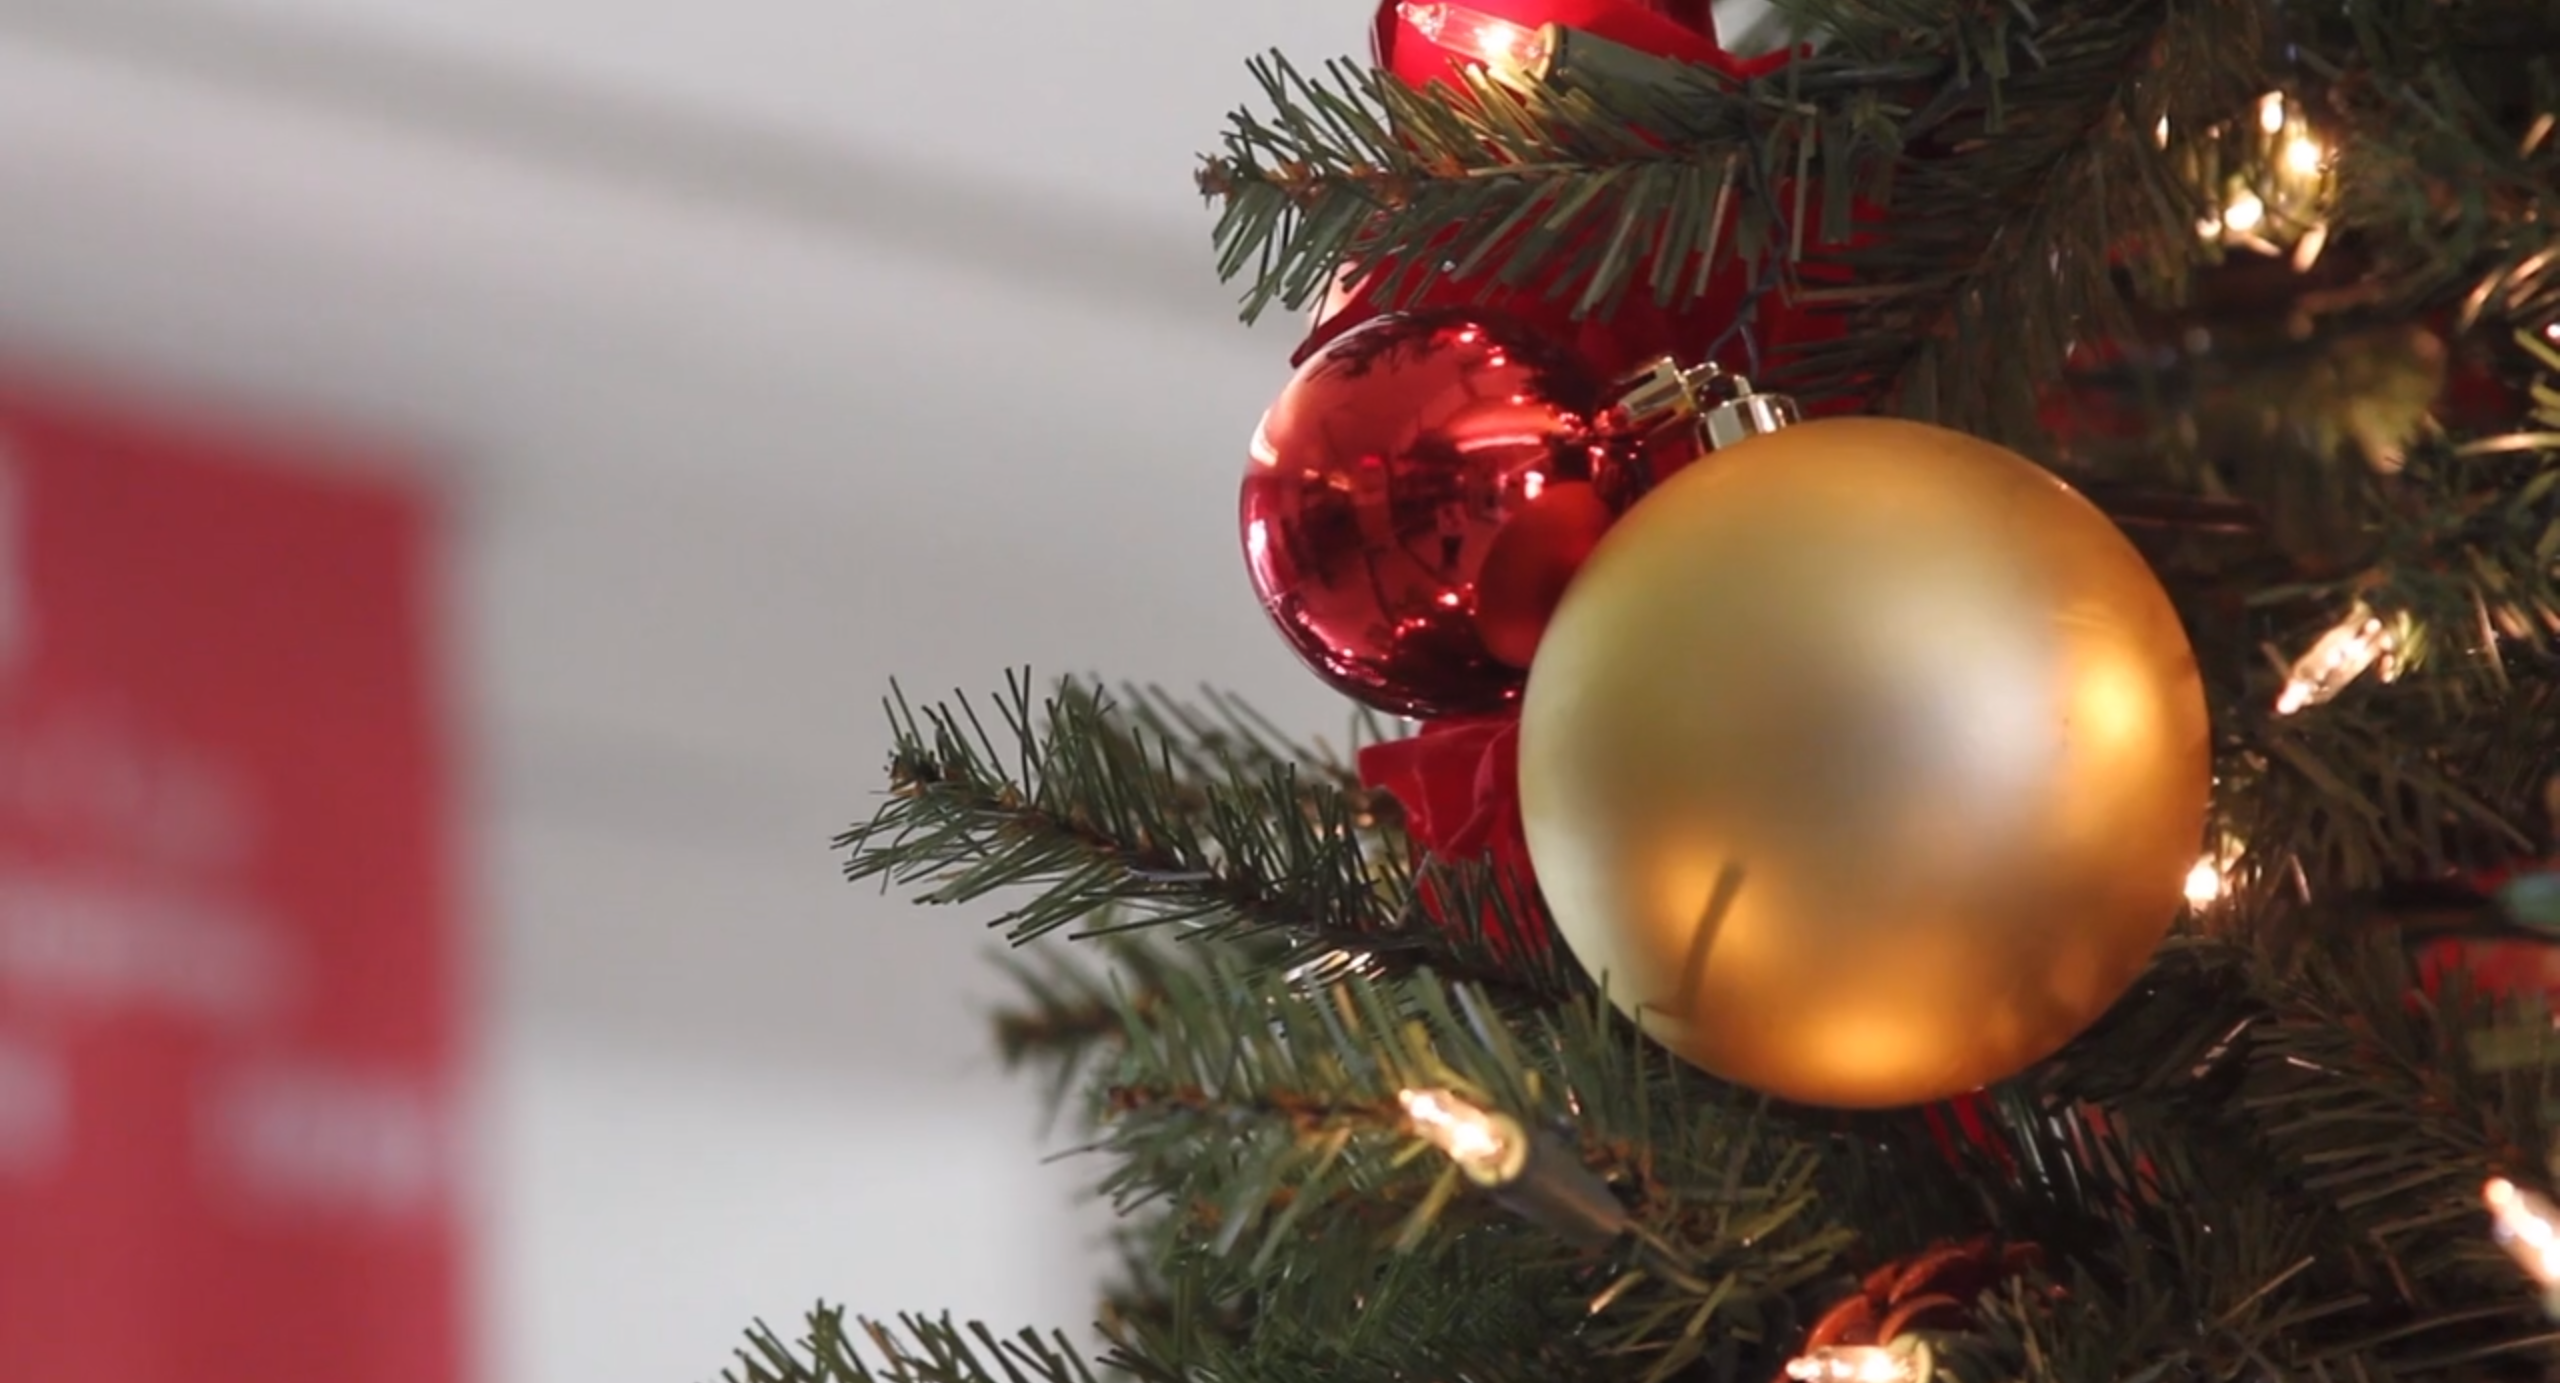 DAY 3: Manual decks its halls with annual holiday decorations